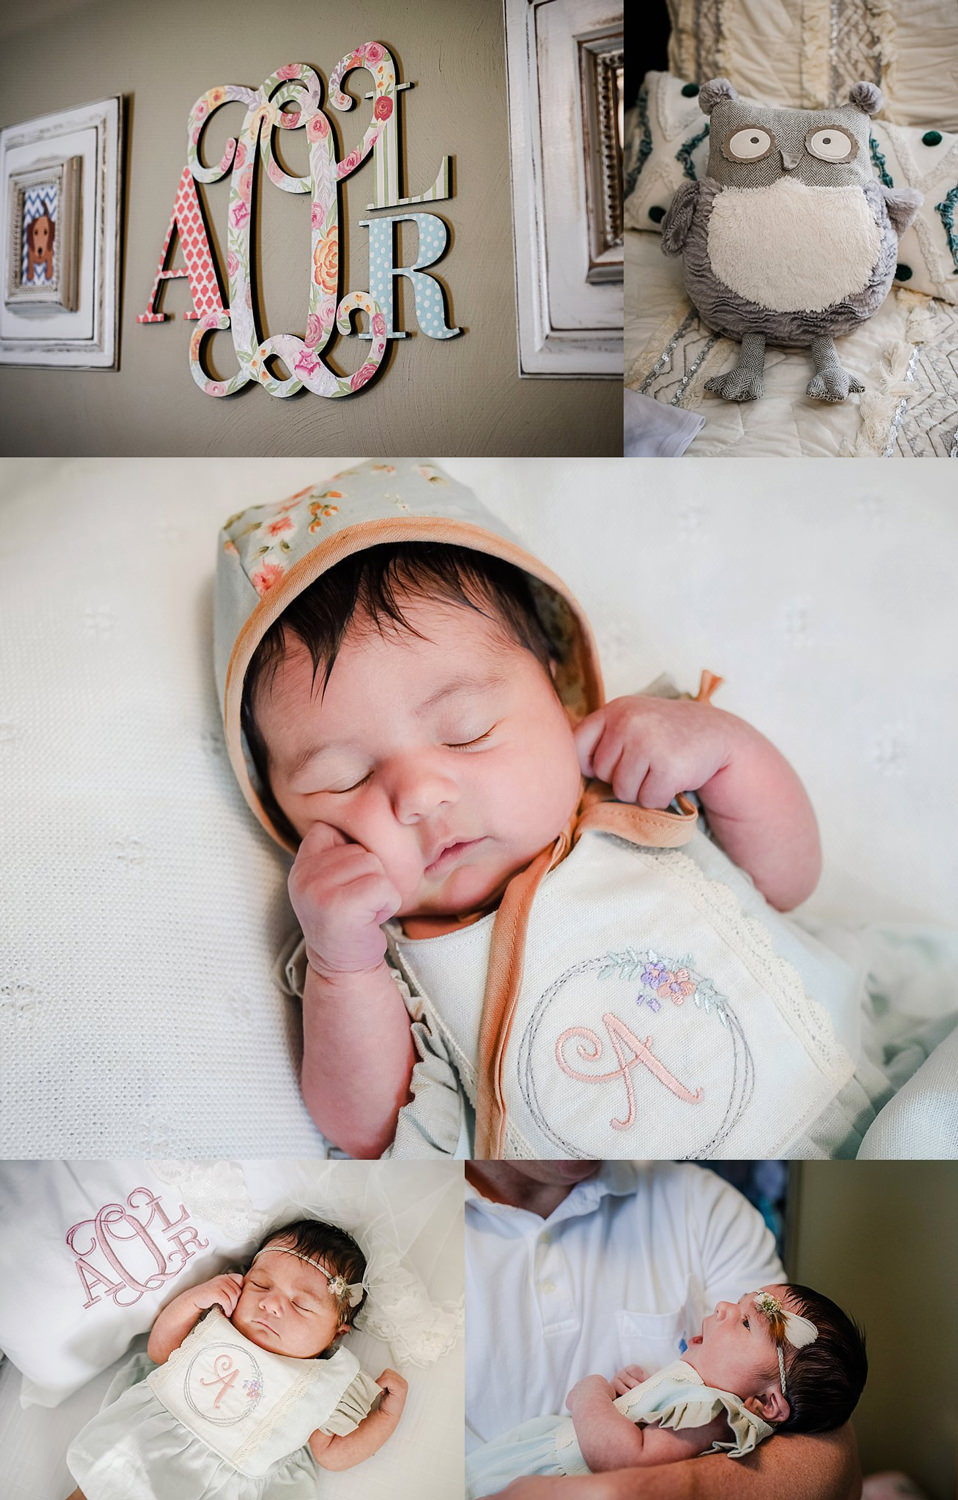 newborn-photos-at-home-virginia-beach-photographer-melissa-bliss-photography.jpg